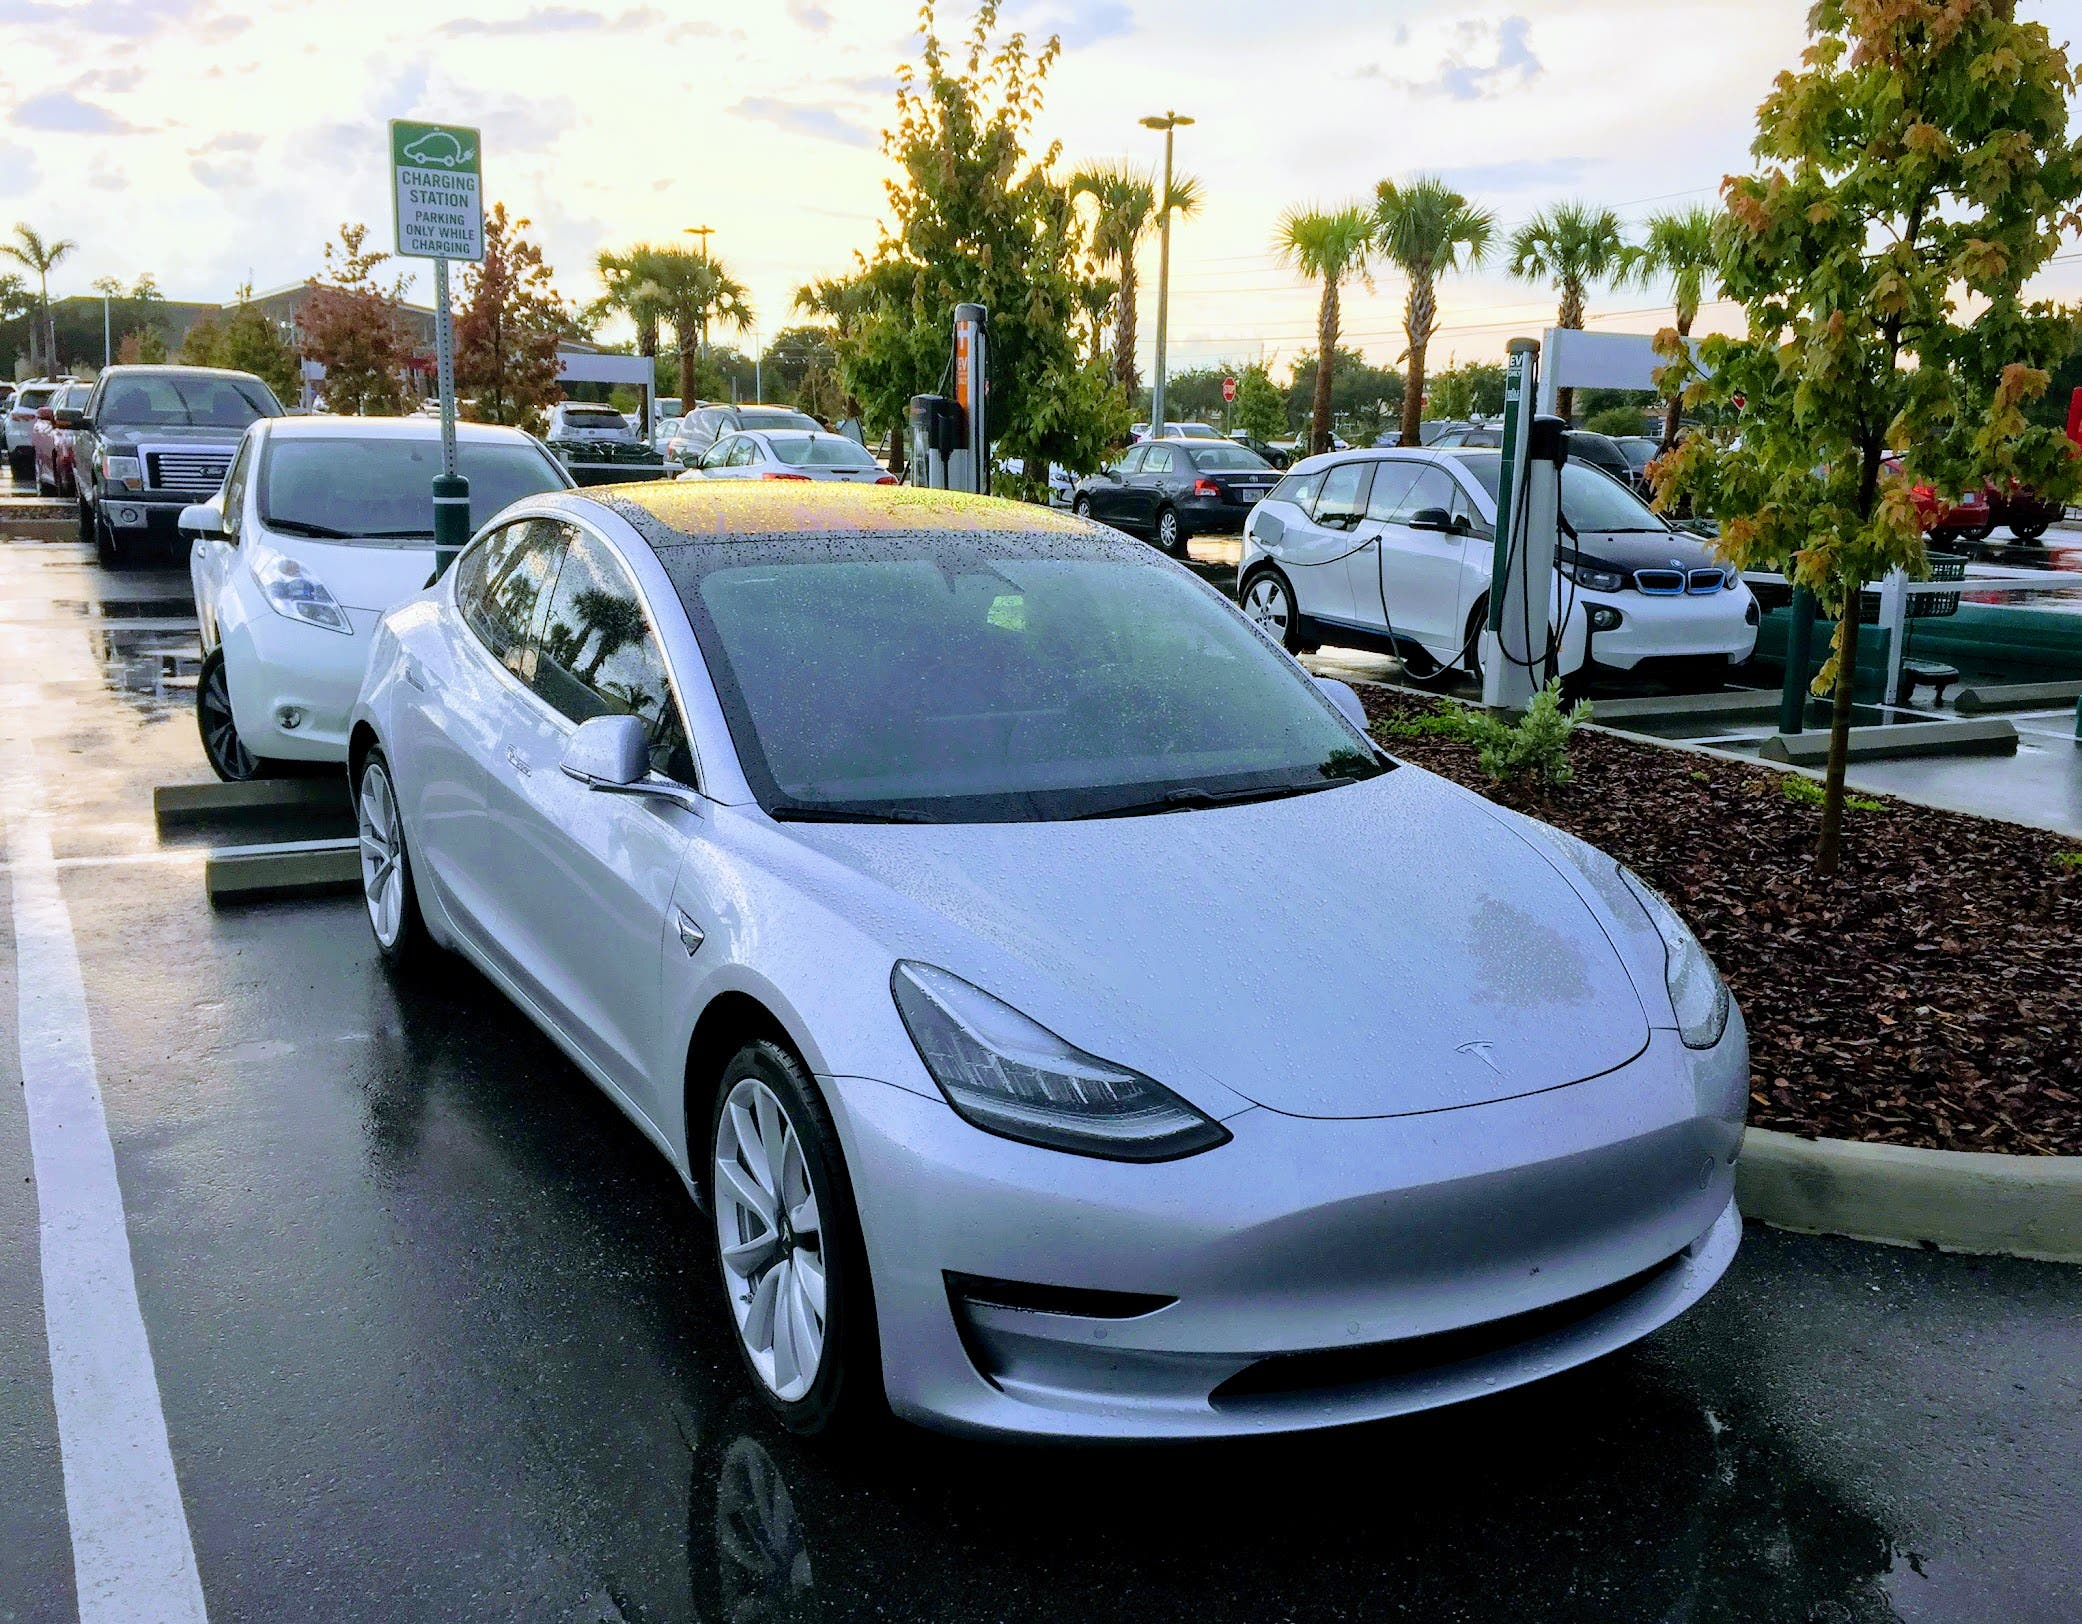 The Stories That Caught Eye And Imagination Most This Past Week On Cleantechnica Included An Original Ysis Used Tesla Model 3 Prices Vs